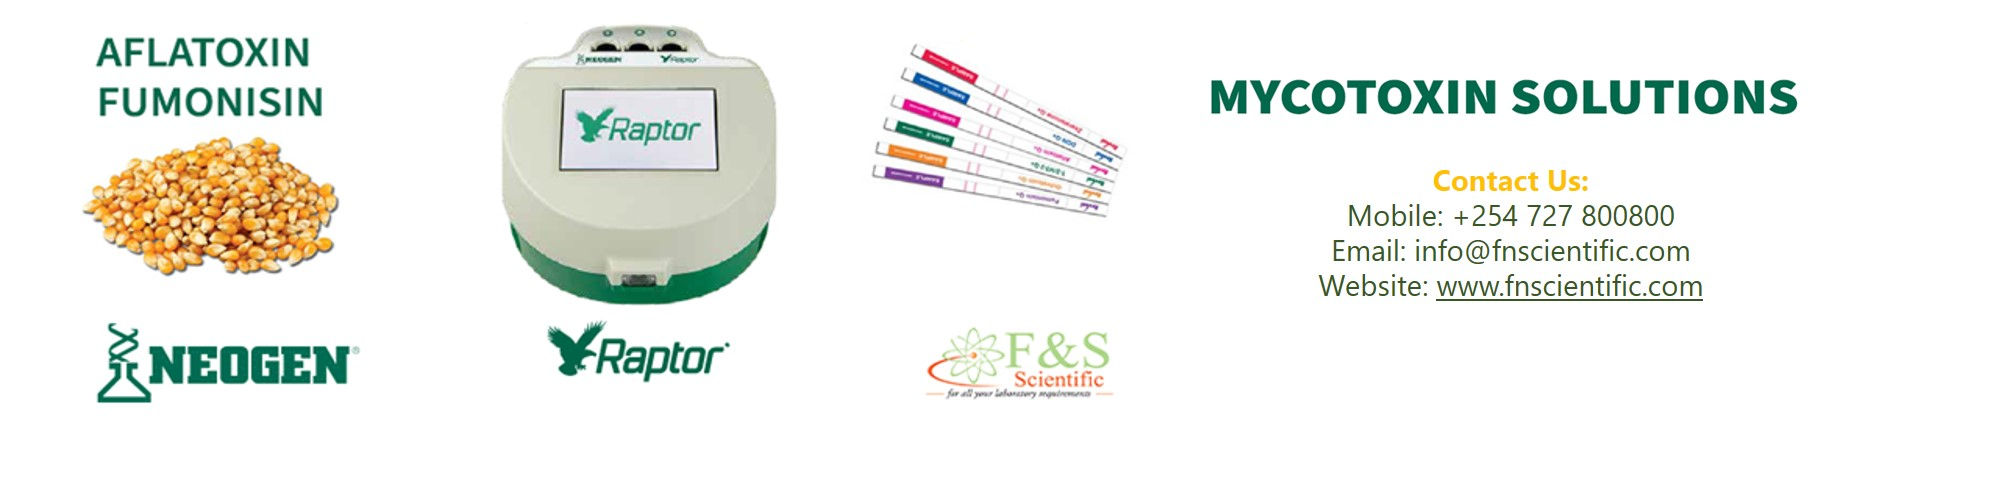 MYCOTOXINS SOLUTIONS